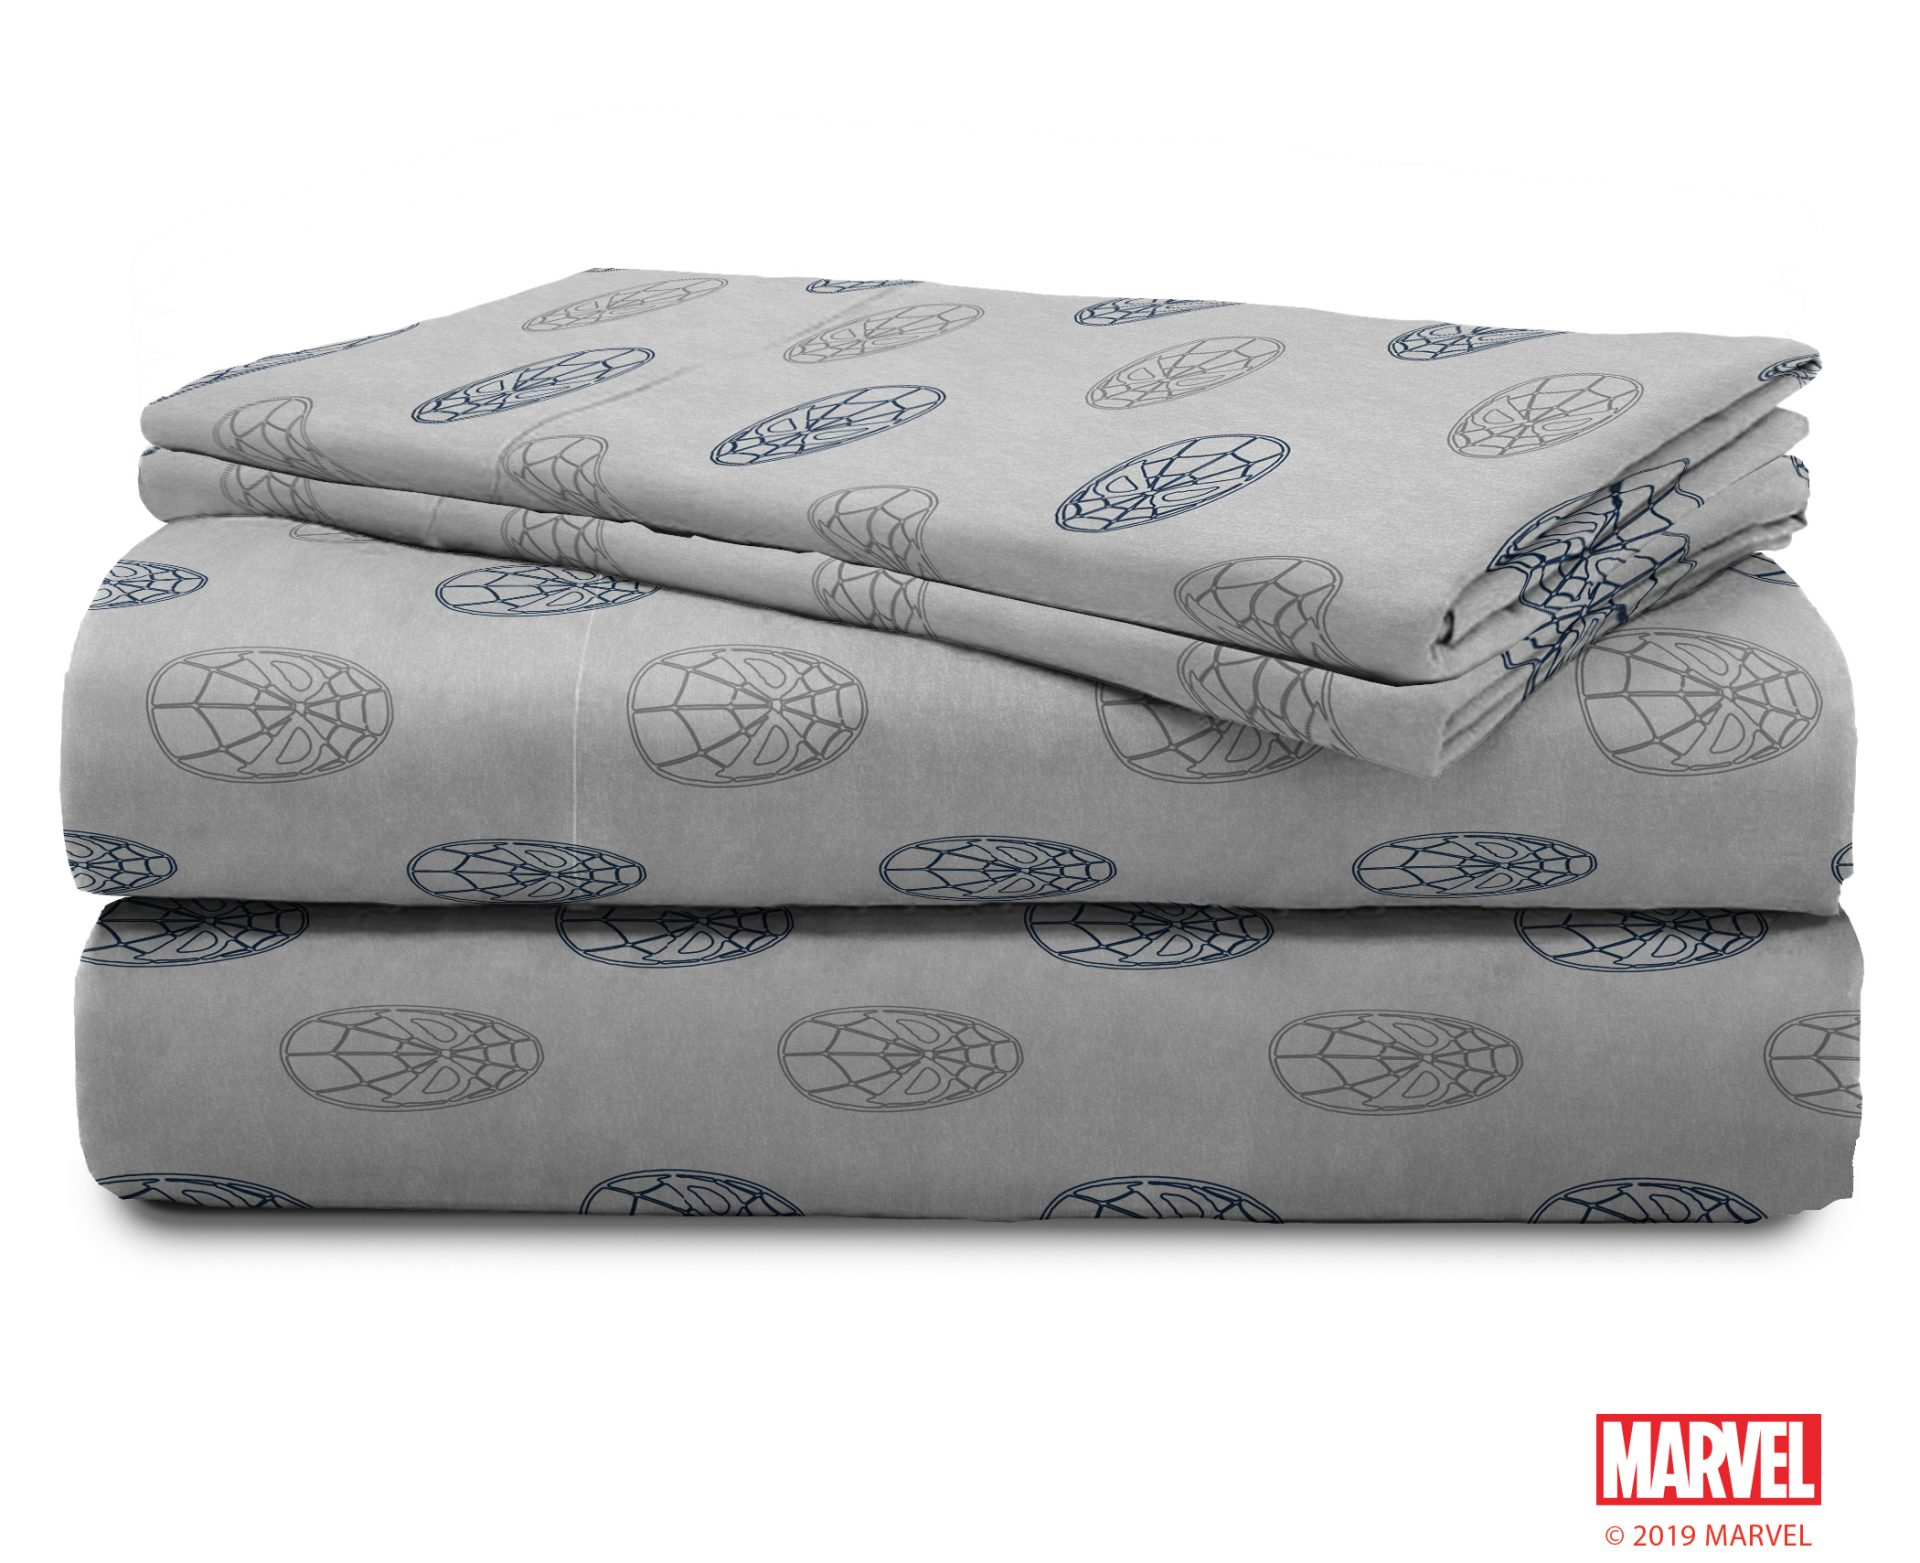 Marvel's Spider-Man™ Sheet Set